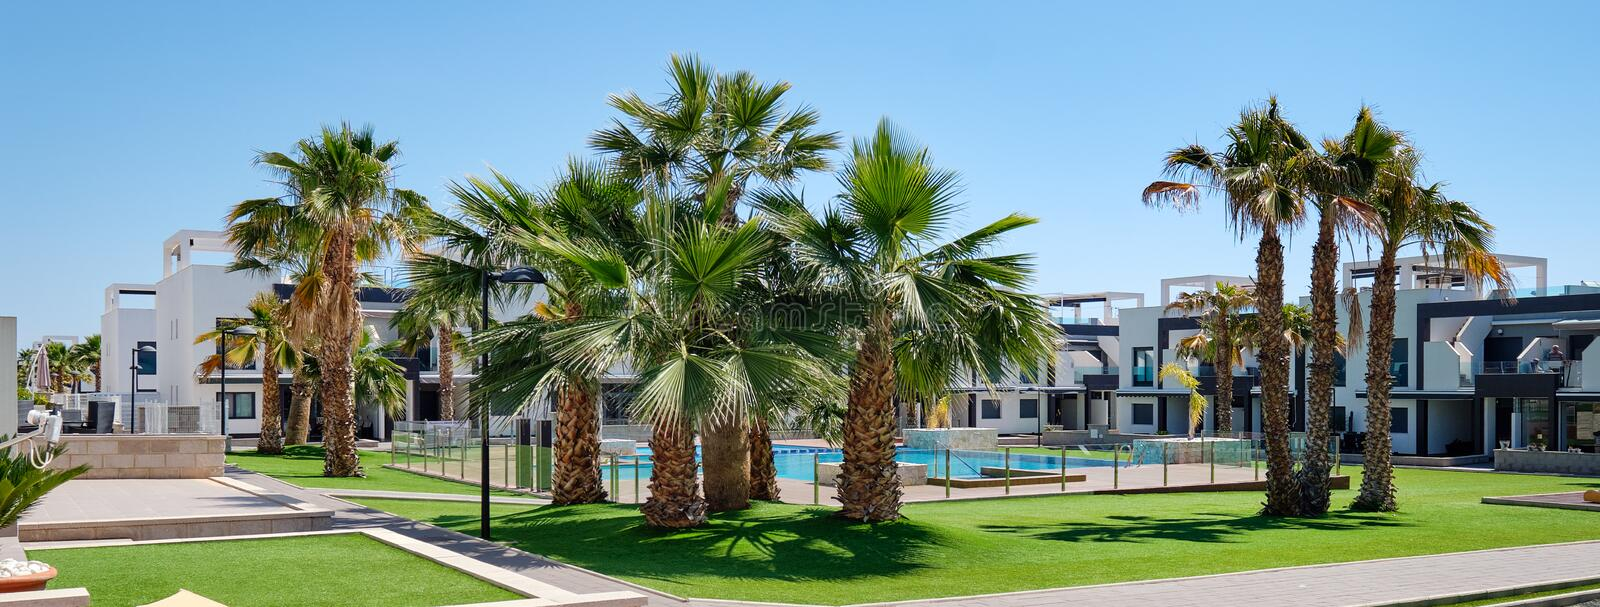 Lush palm trees inside of closed urbanization with green lawn swimming pool modern houses at sunny summer day. New property in Spain, no people, horizontal royalty free stock image